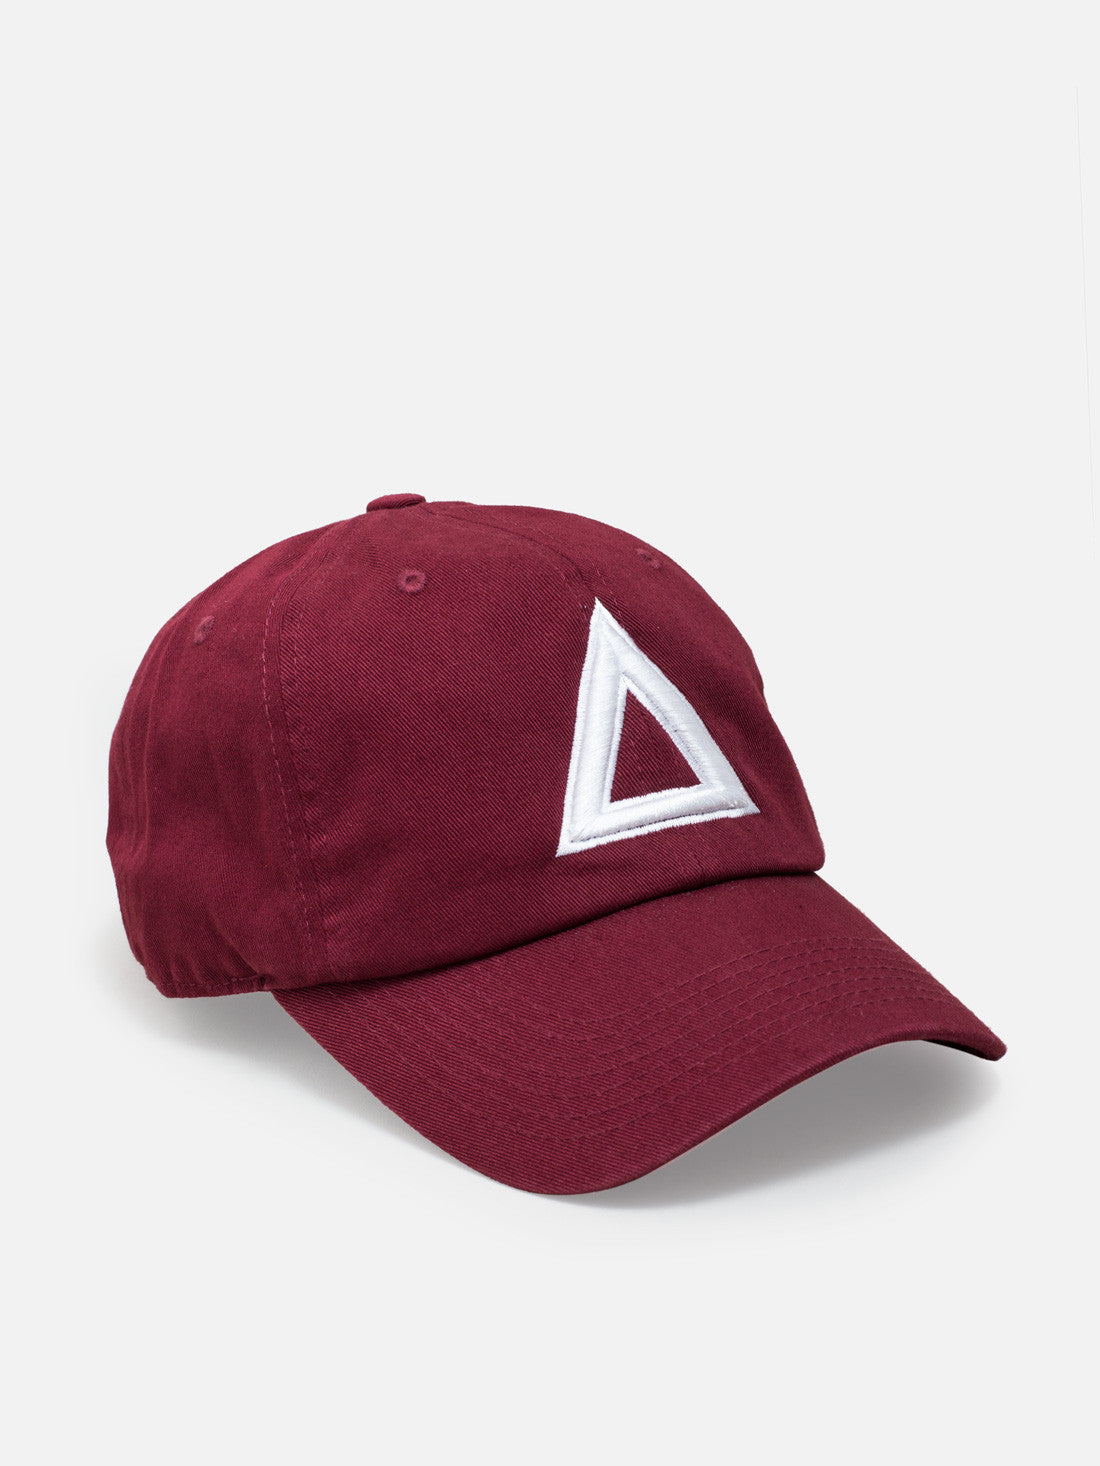 Dad hat Burgundy - white tri